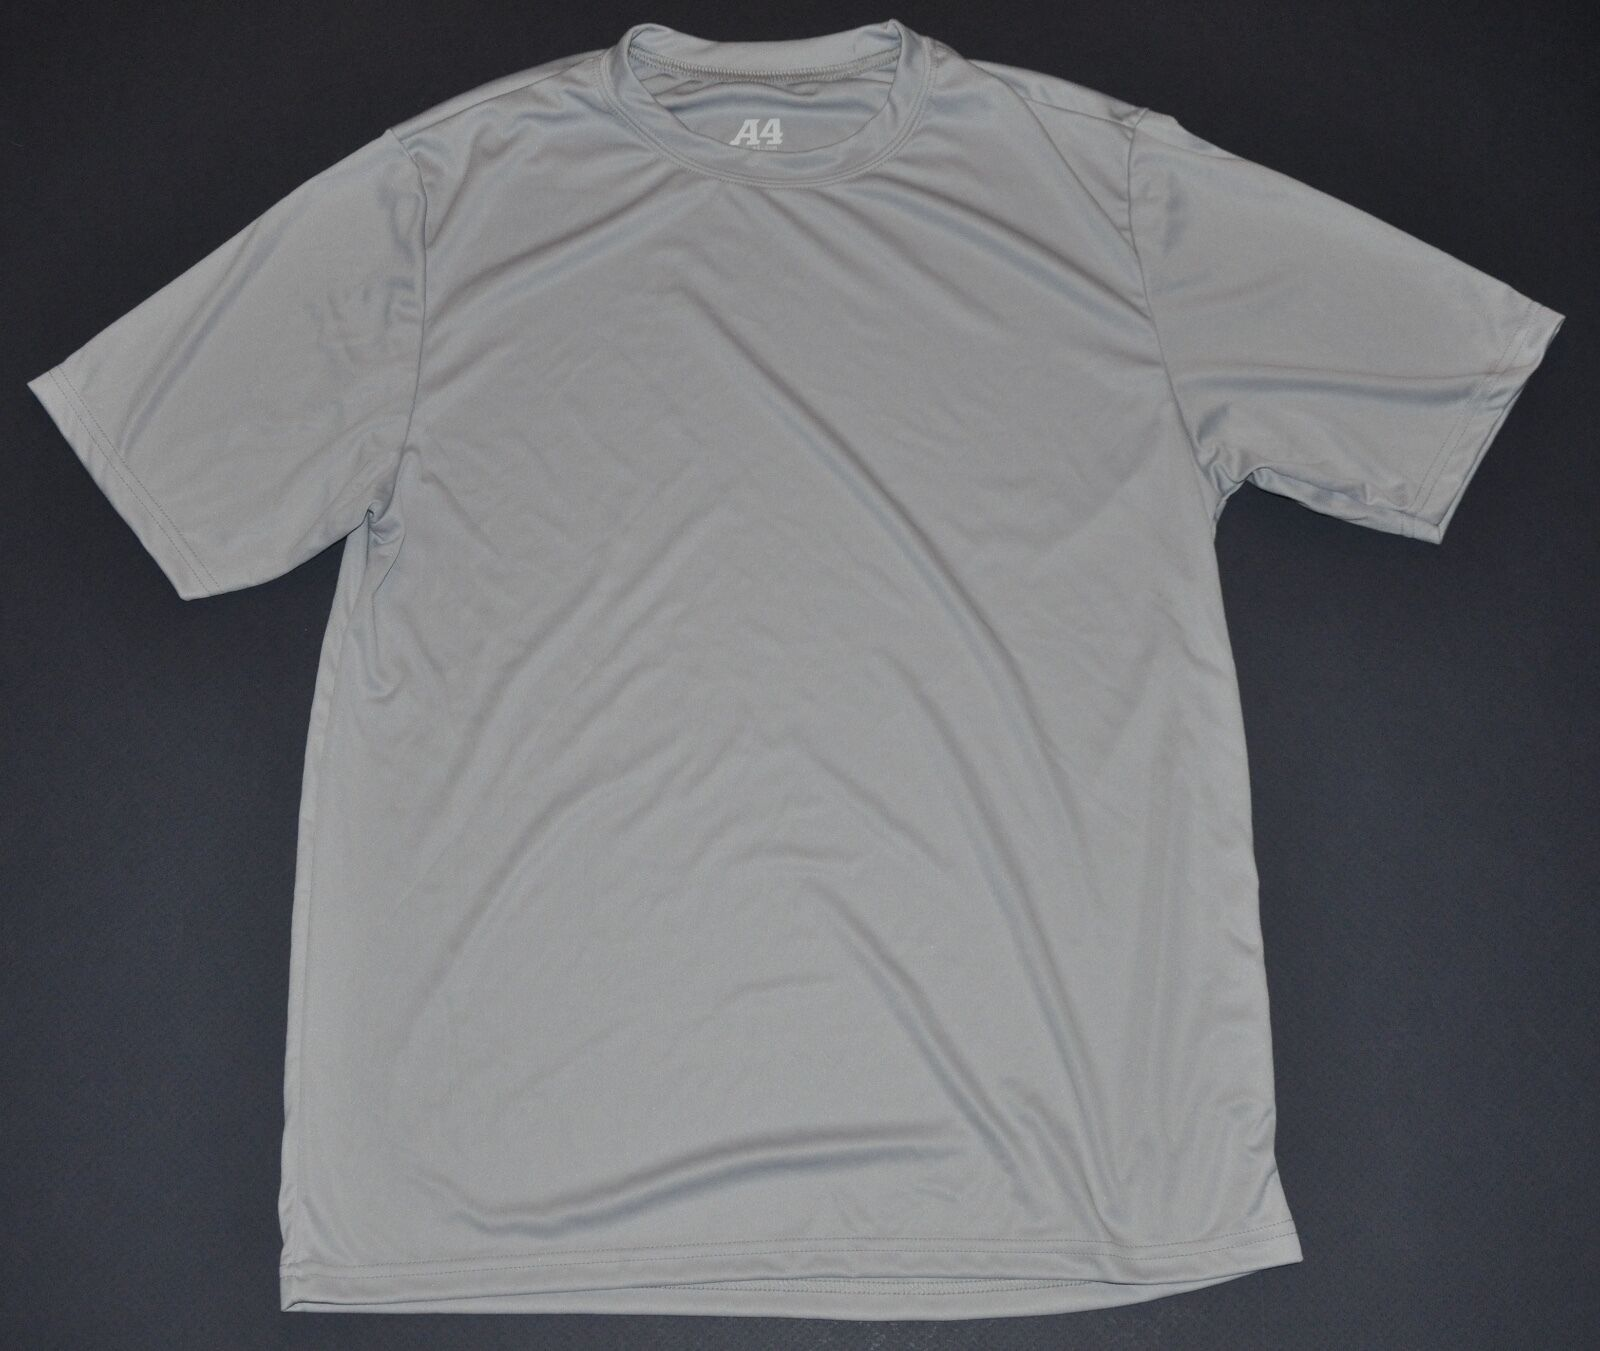 New w/o tags A4 Mens Silver Performance Cooling Crew T-Shirt Polyester Running